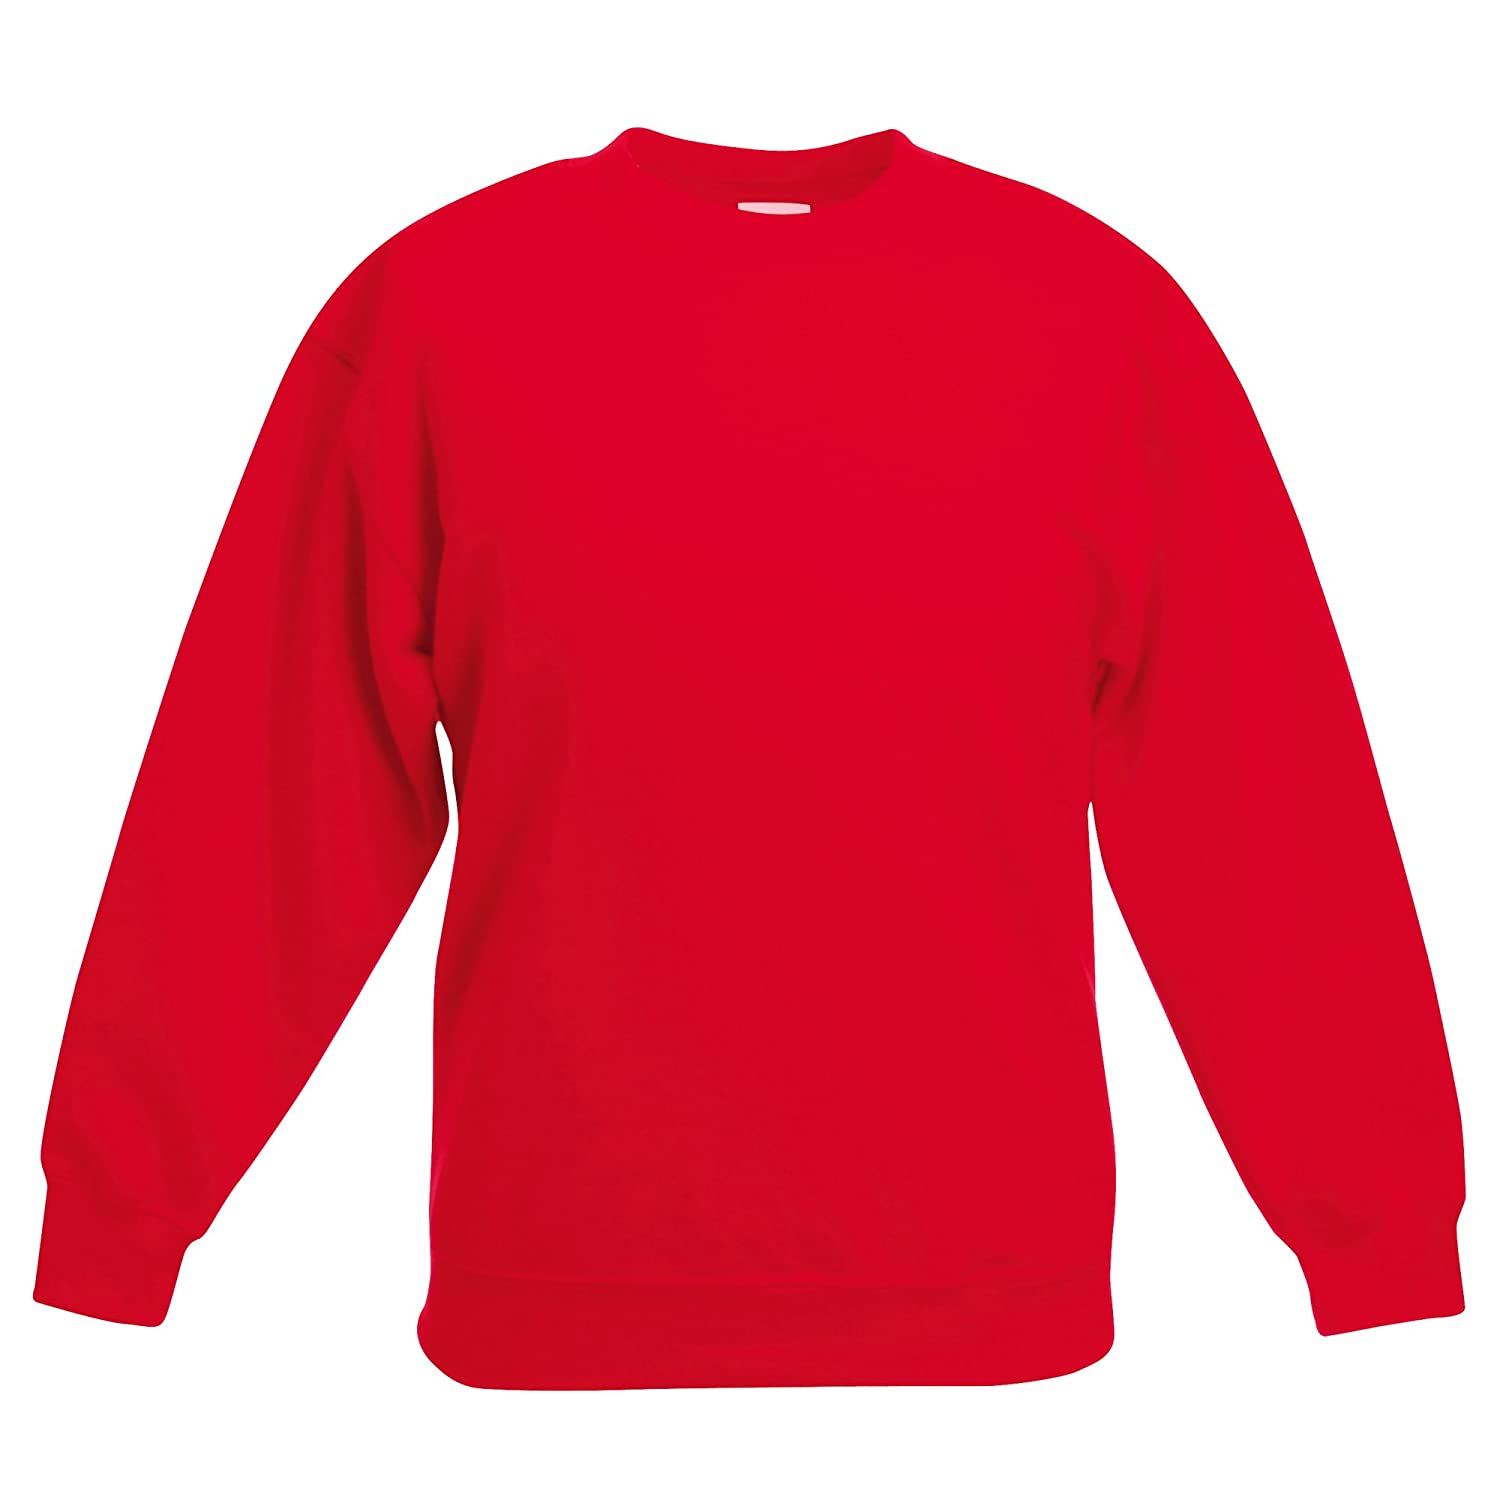 Fruit of the Loom Kids Unisex Classic 80/20 Set-In Sweatshirt